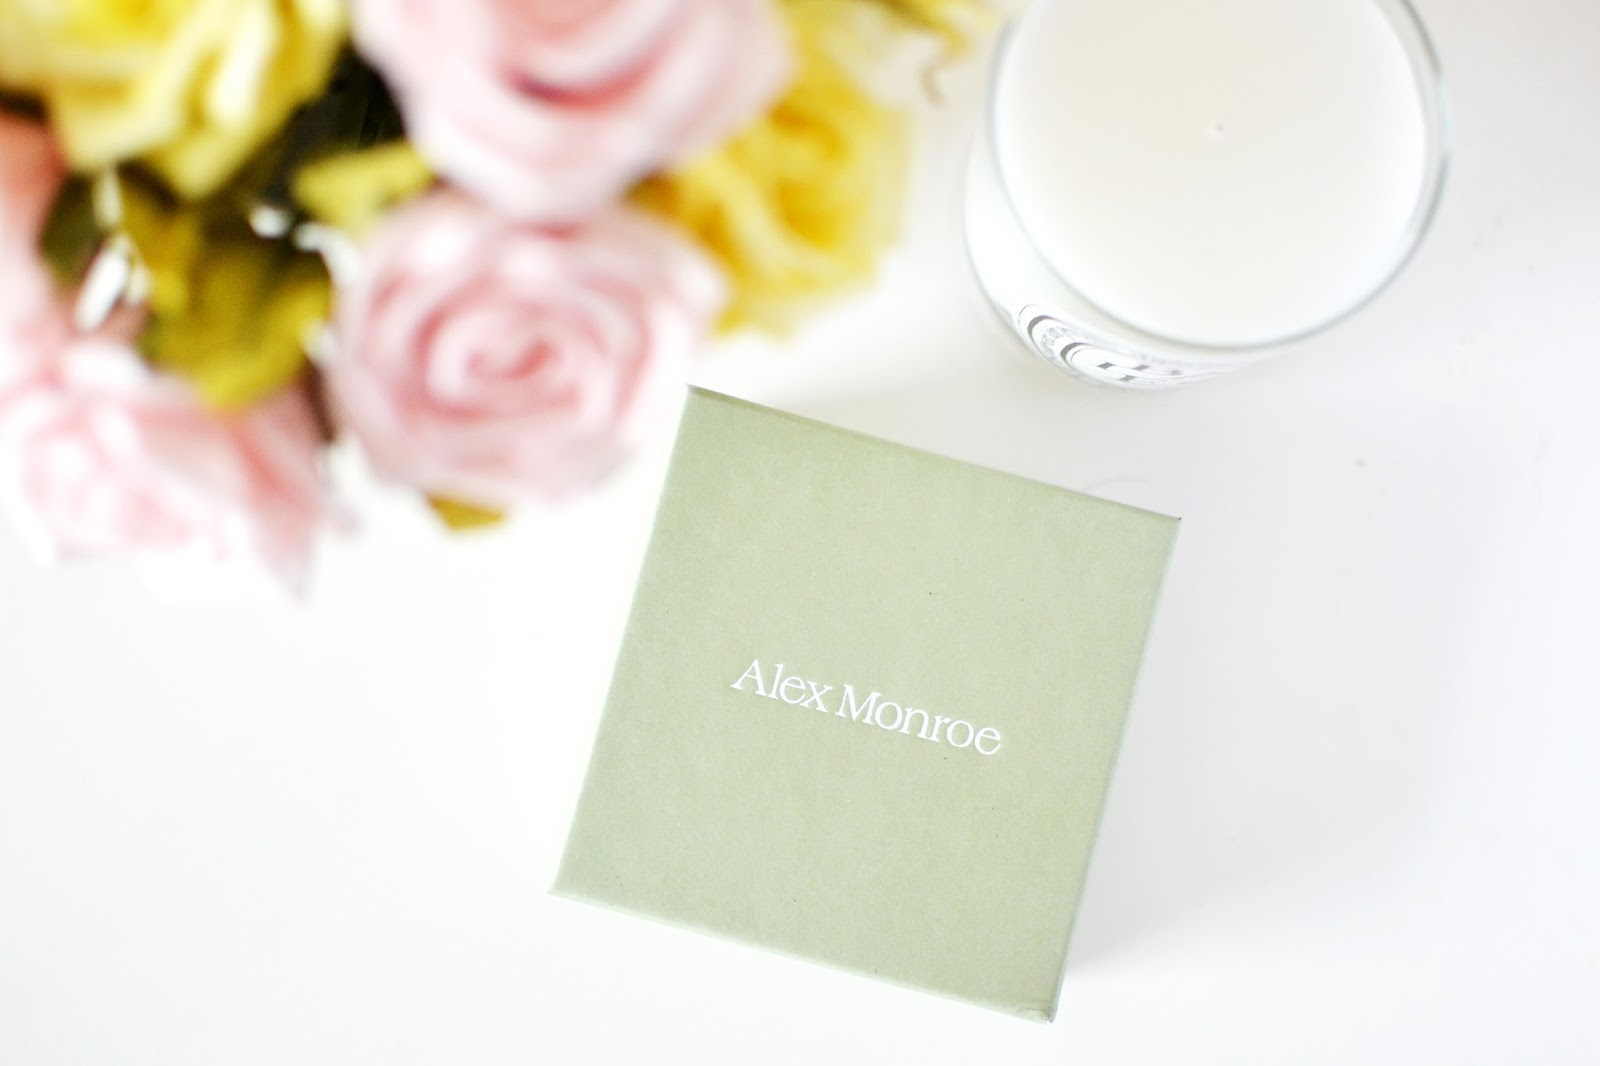 alex monroe packaging, alex monroe jewellery